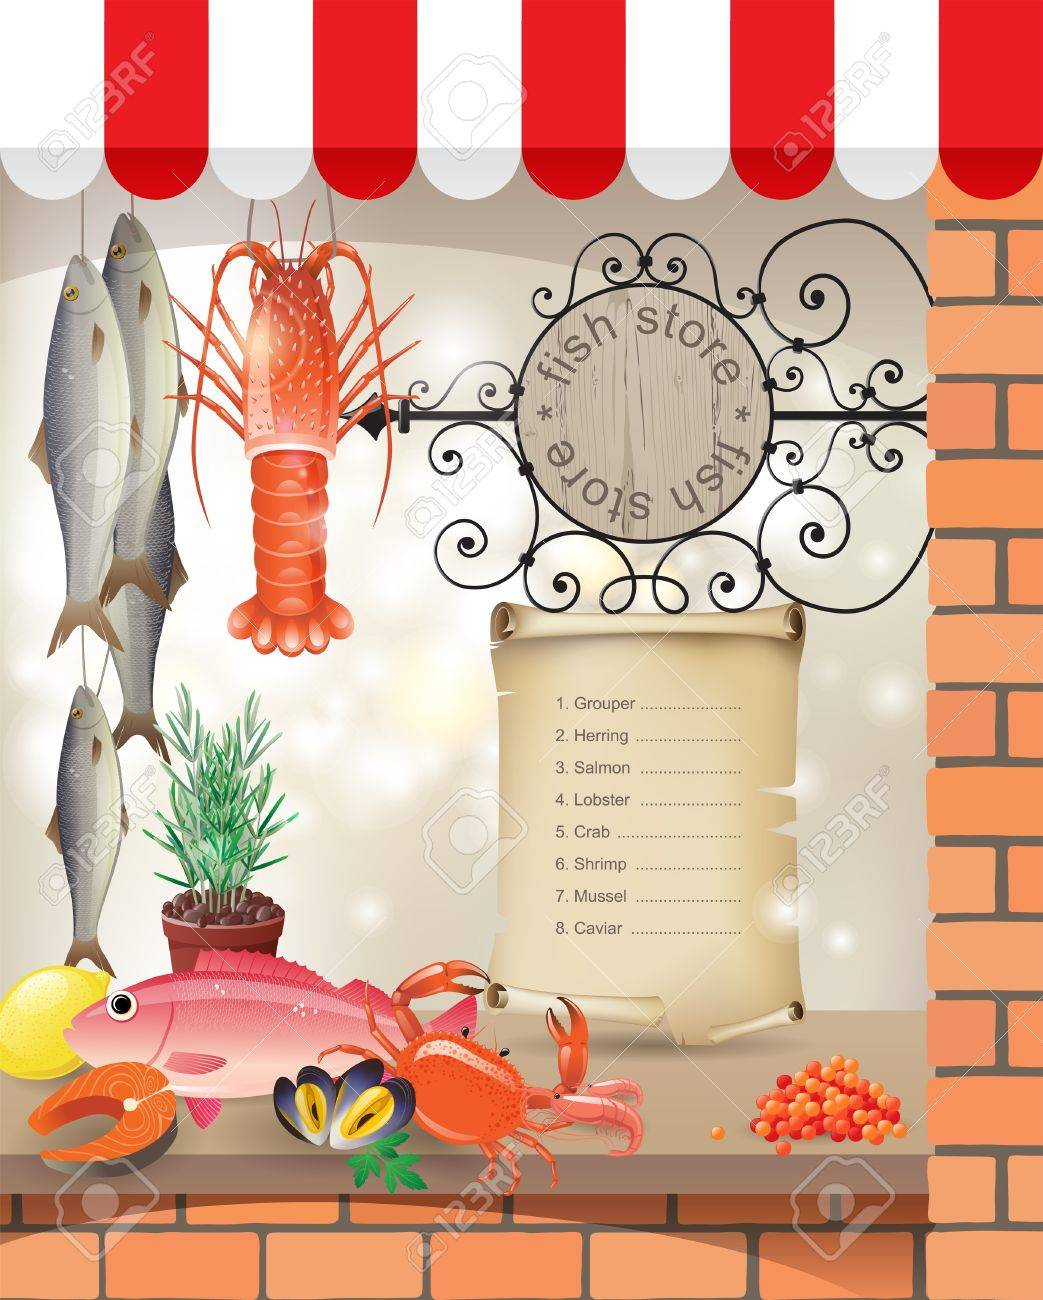 Highly detailed fish store showcase Stock Vector - 16544955